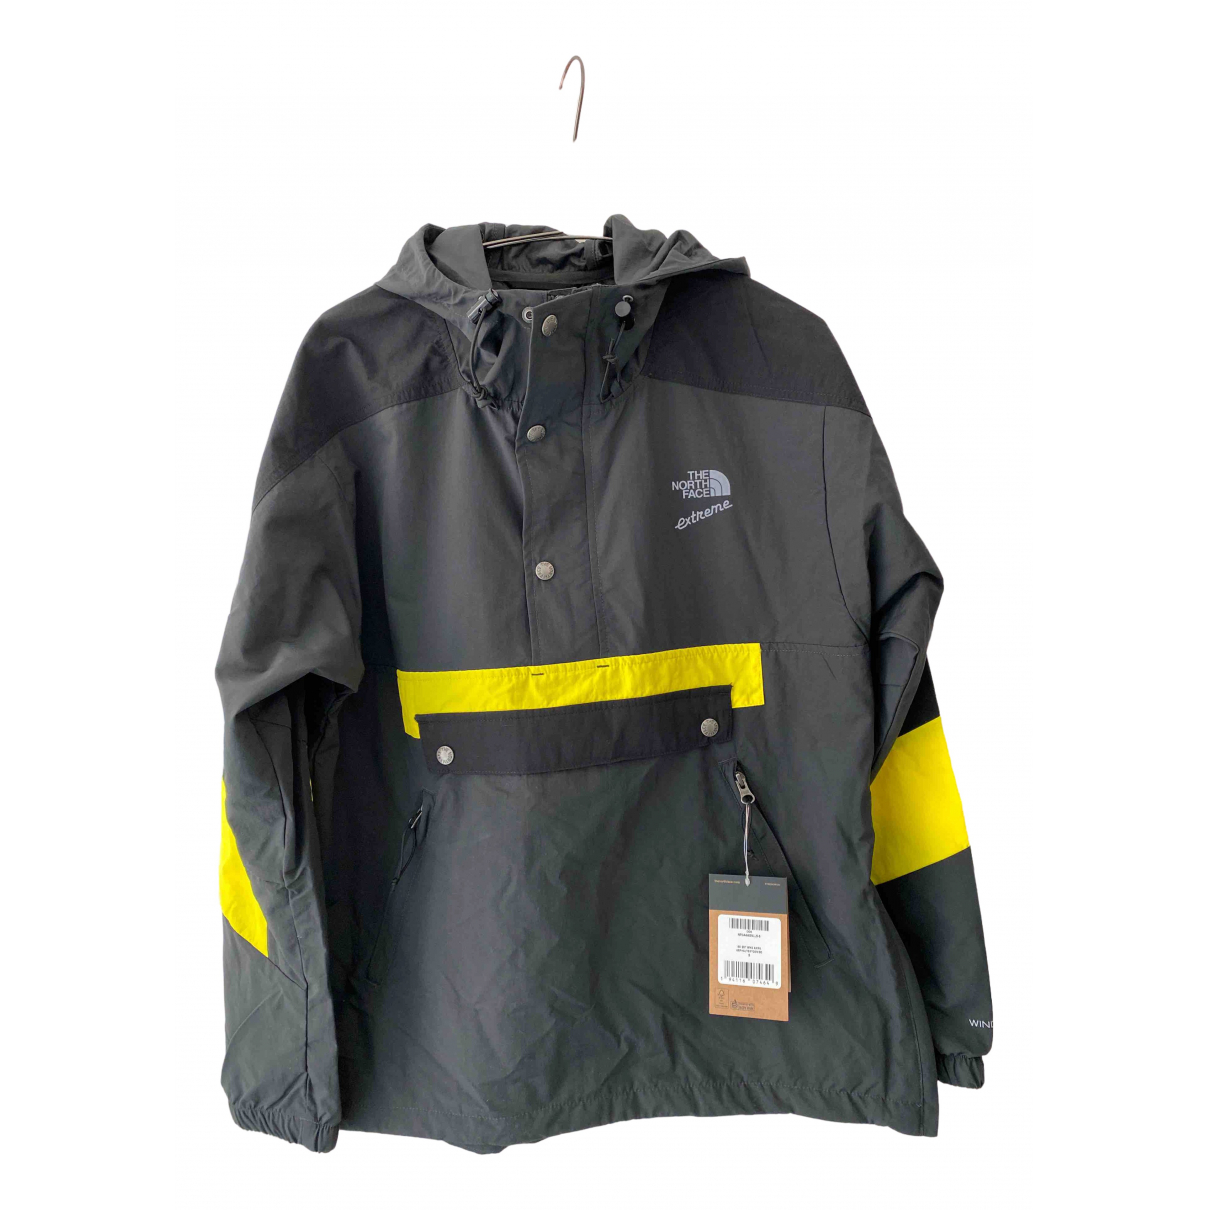 The North Face \N Black jacket  for Men S International